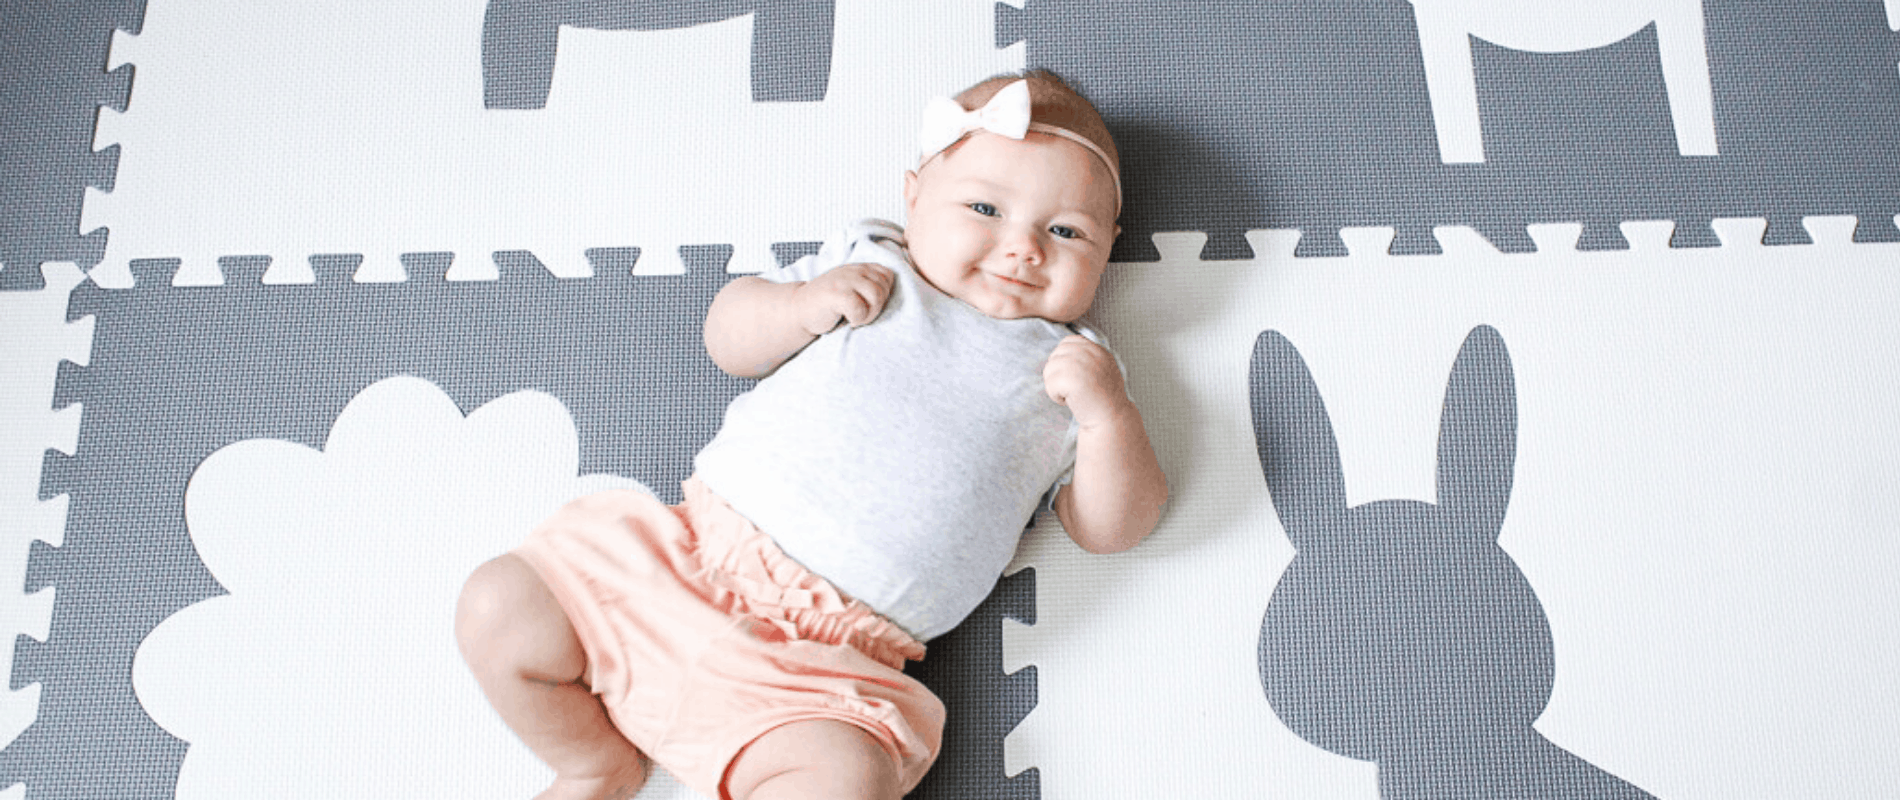 Baby smiling on play mat